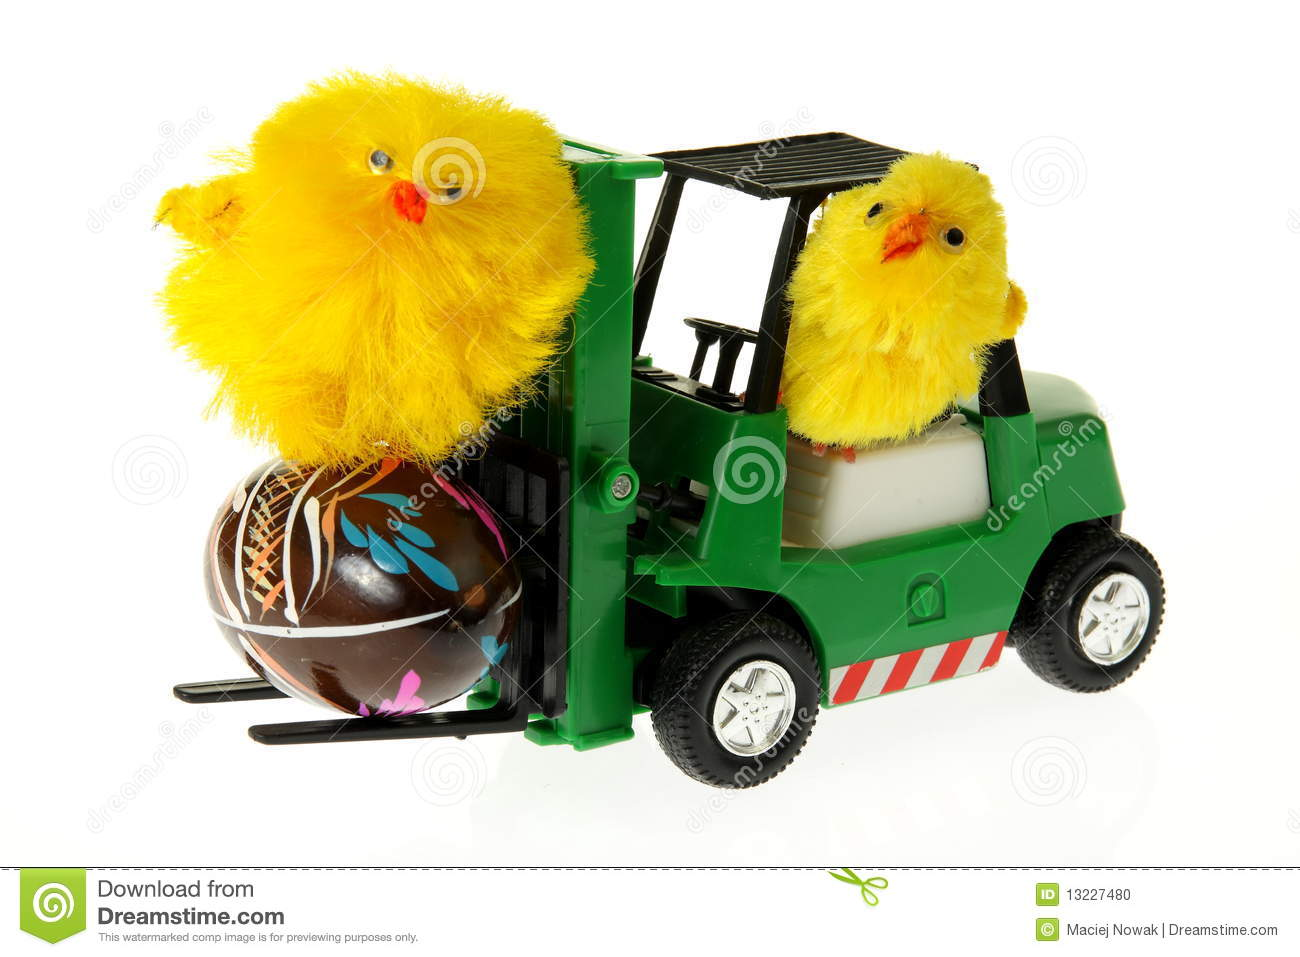 Chickens On A Forklift With Easter Egg Stock Photo - Image: 13227480